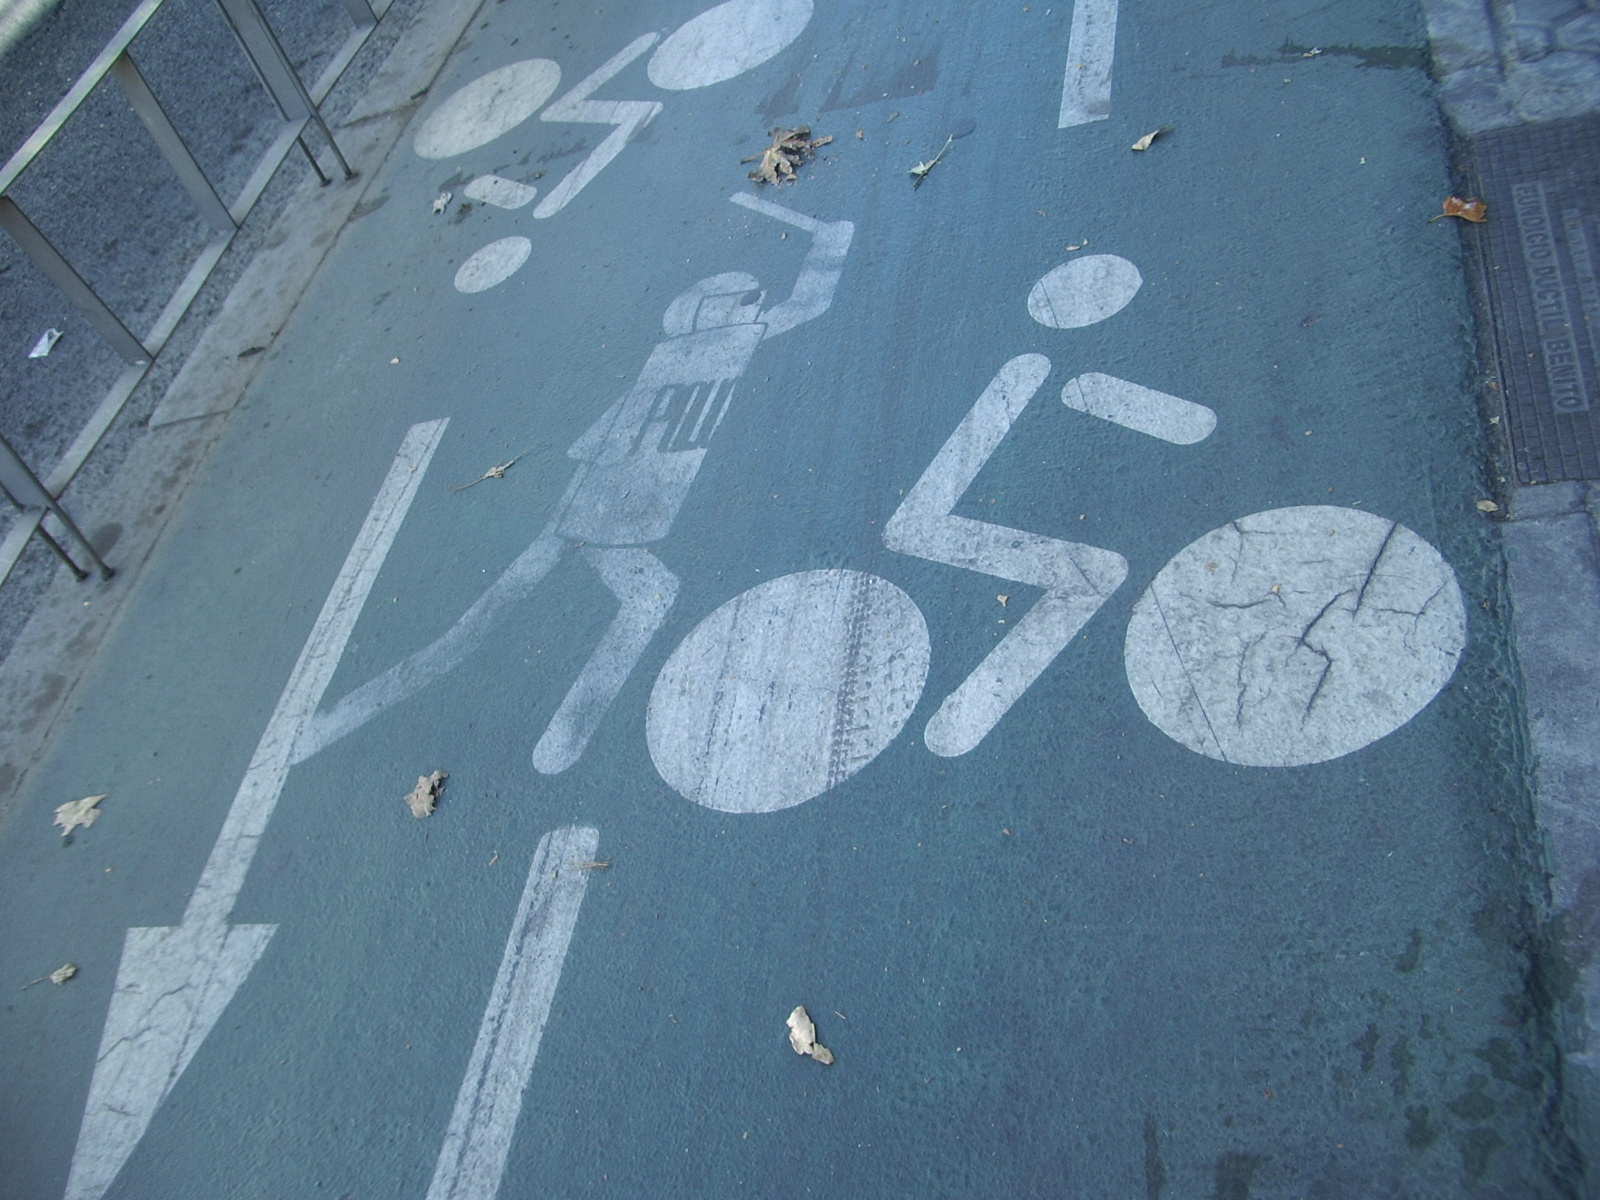 Stencil graff in Seville (Andalusia, Spain) (in a segregated cycle facilitie) by Kilezz